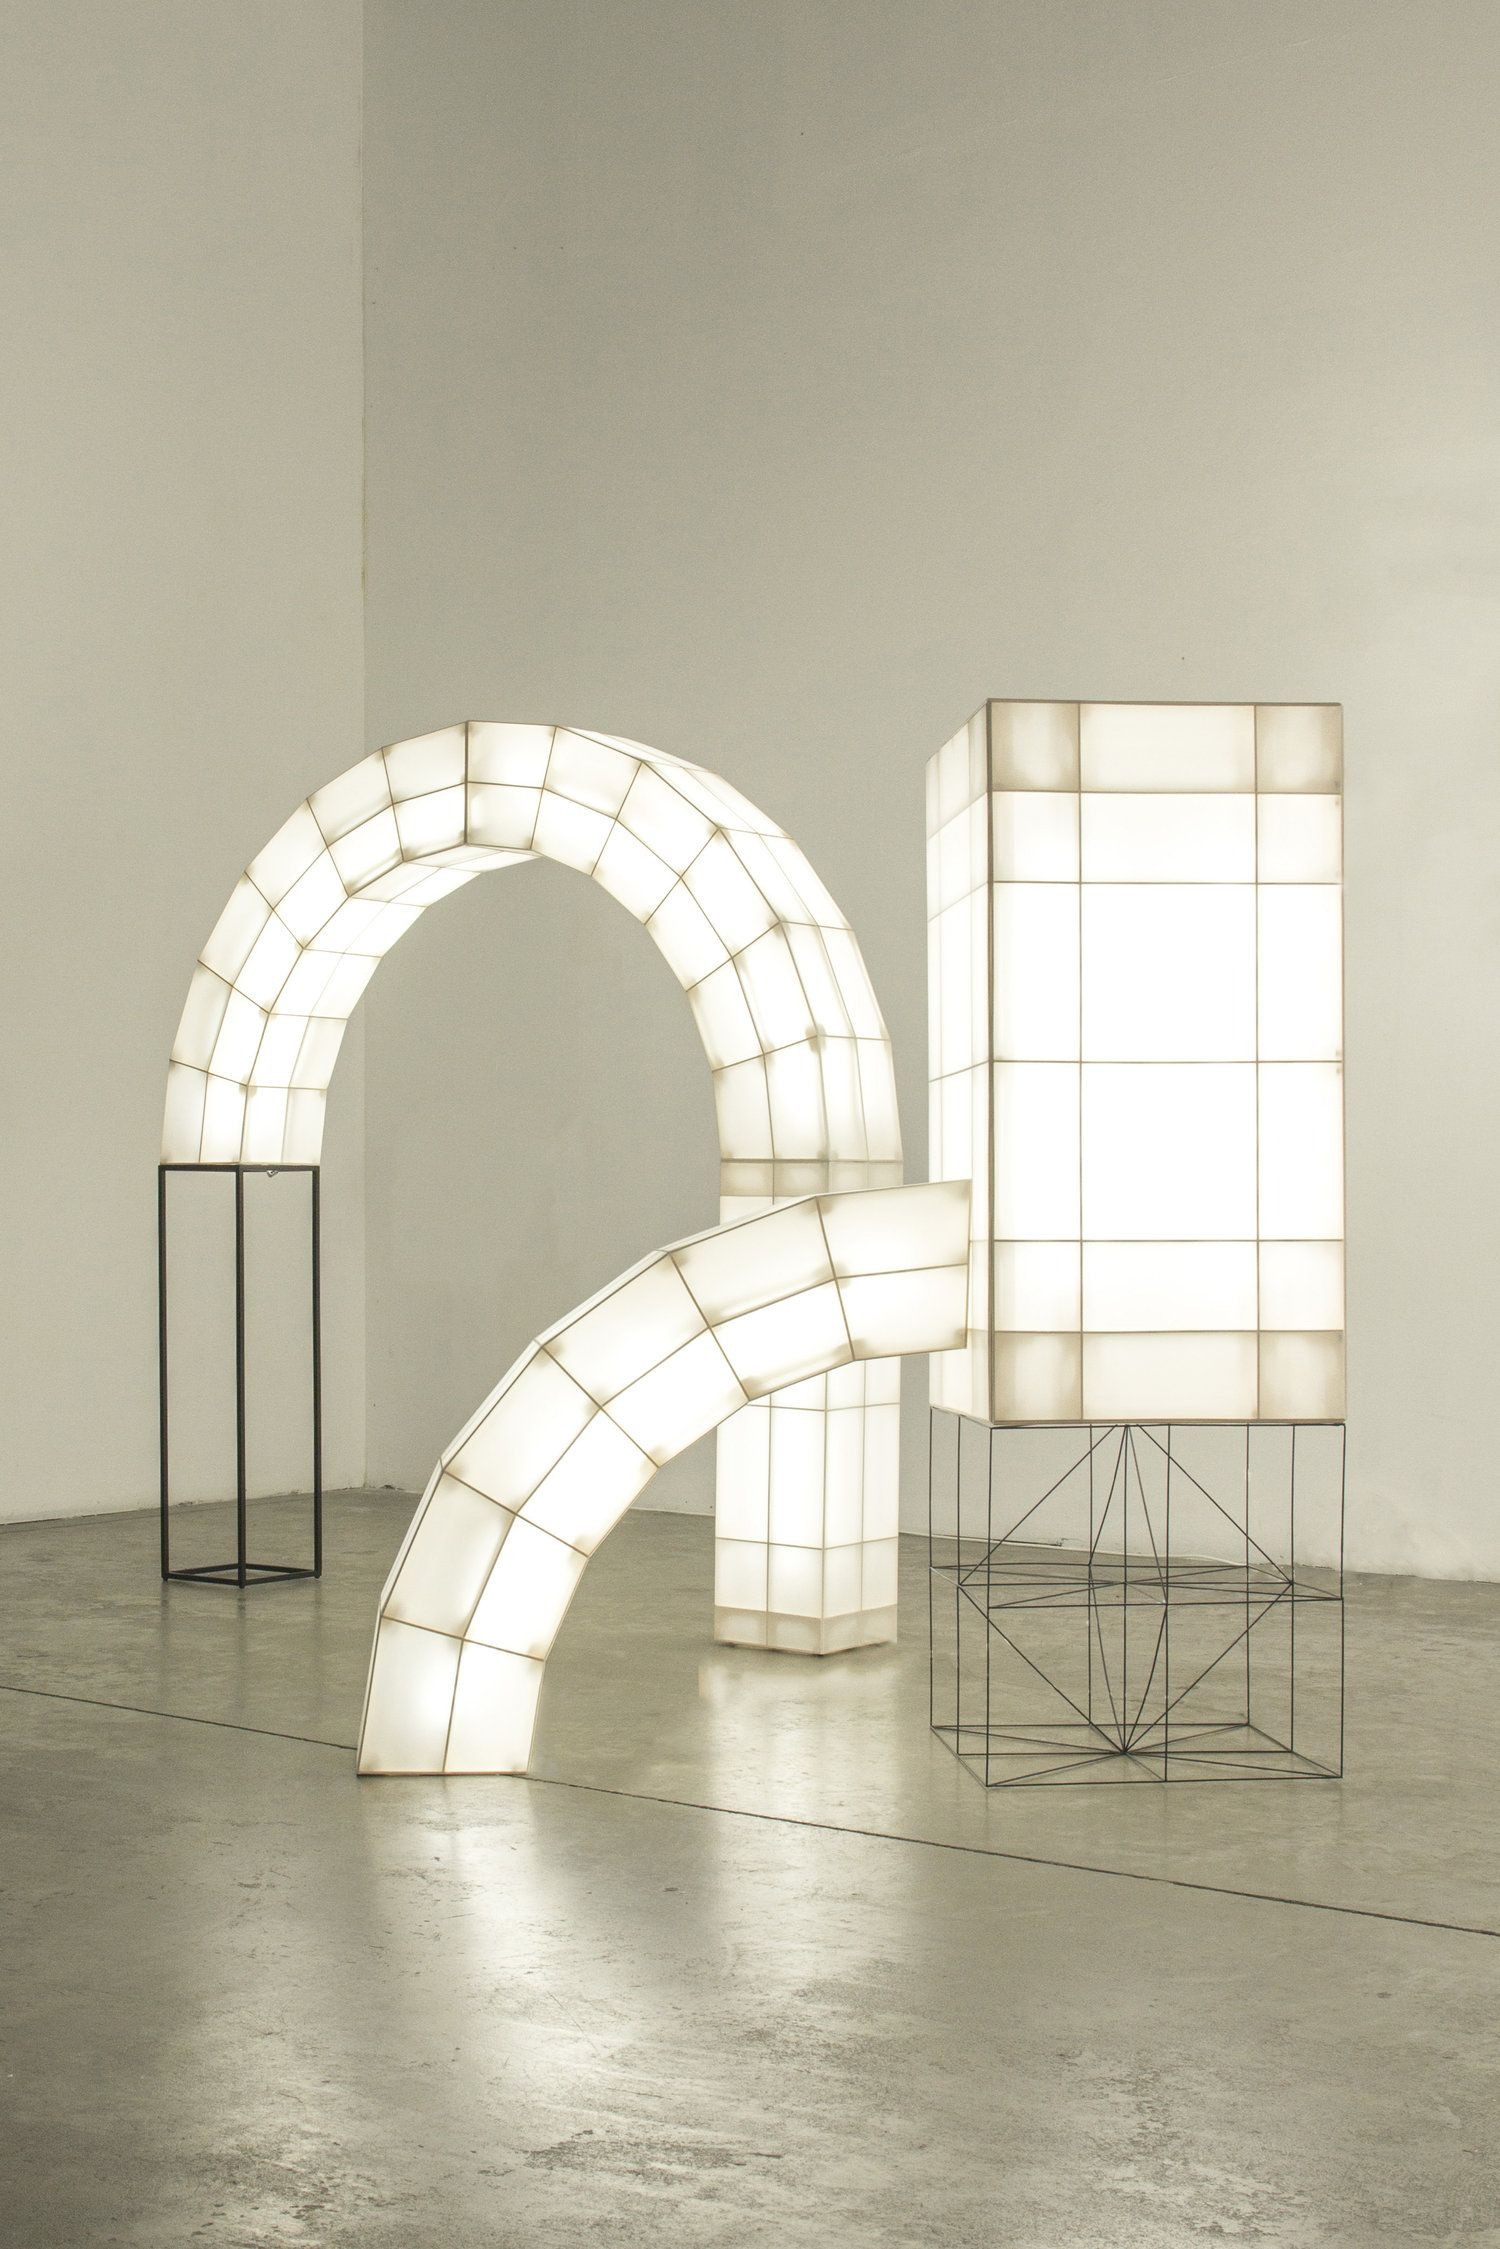 The abstract volumes of the Space Frames are based on archetypical ...